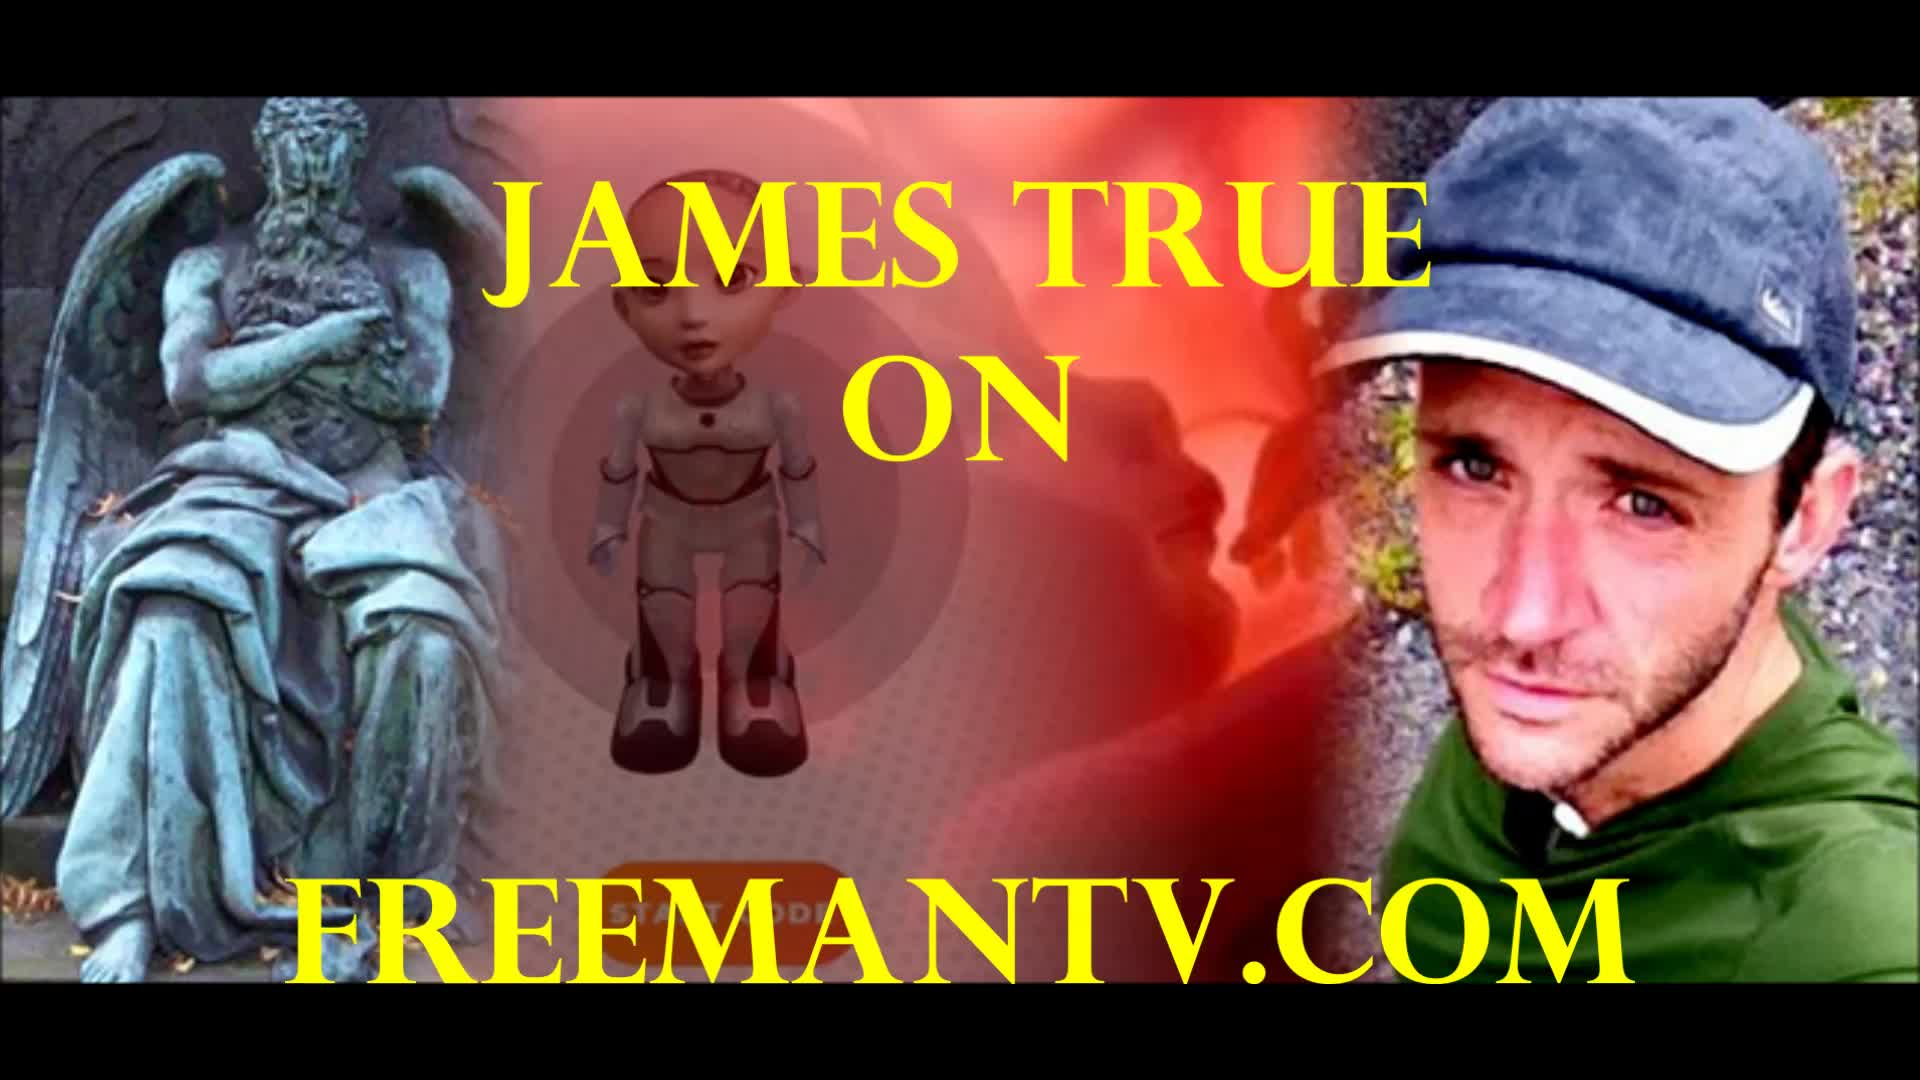 Epic Show: James True on Freeman TV